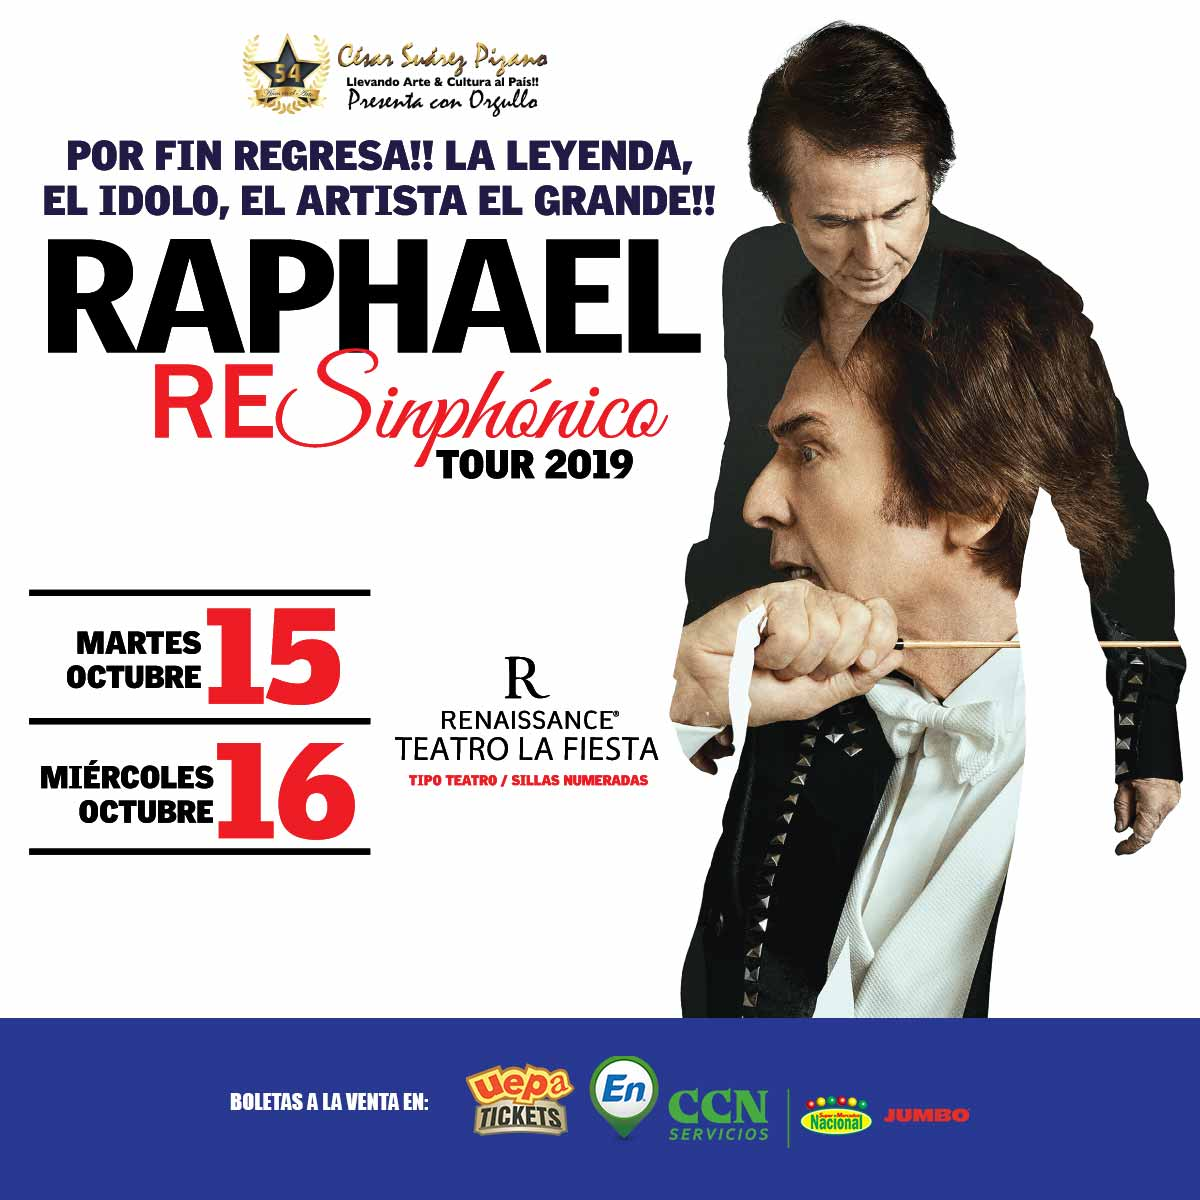 Raphael ReSinphónico Tour 2019